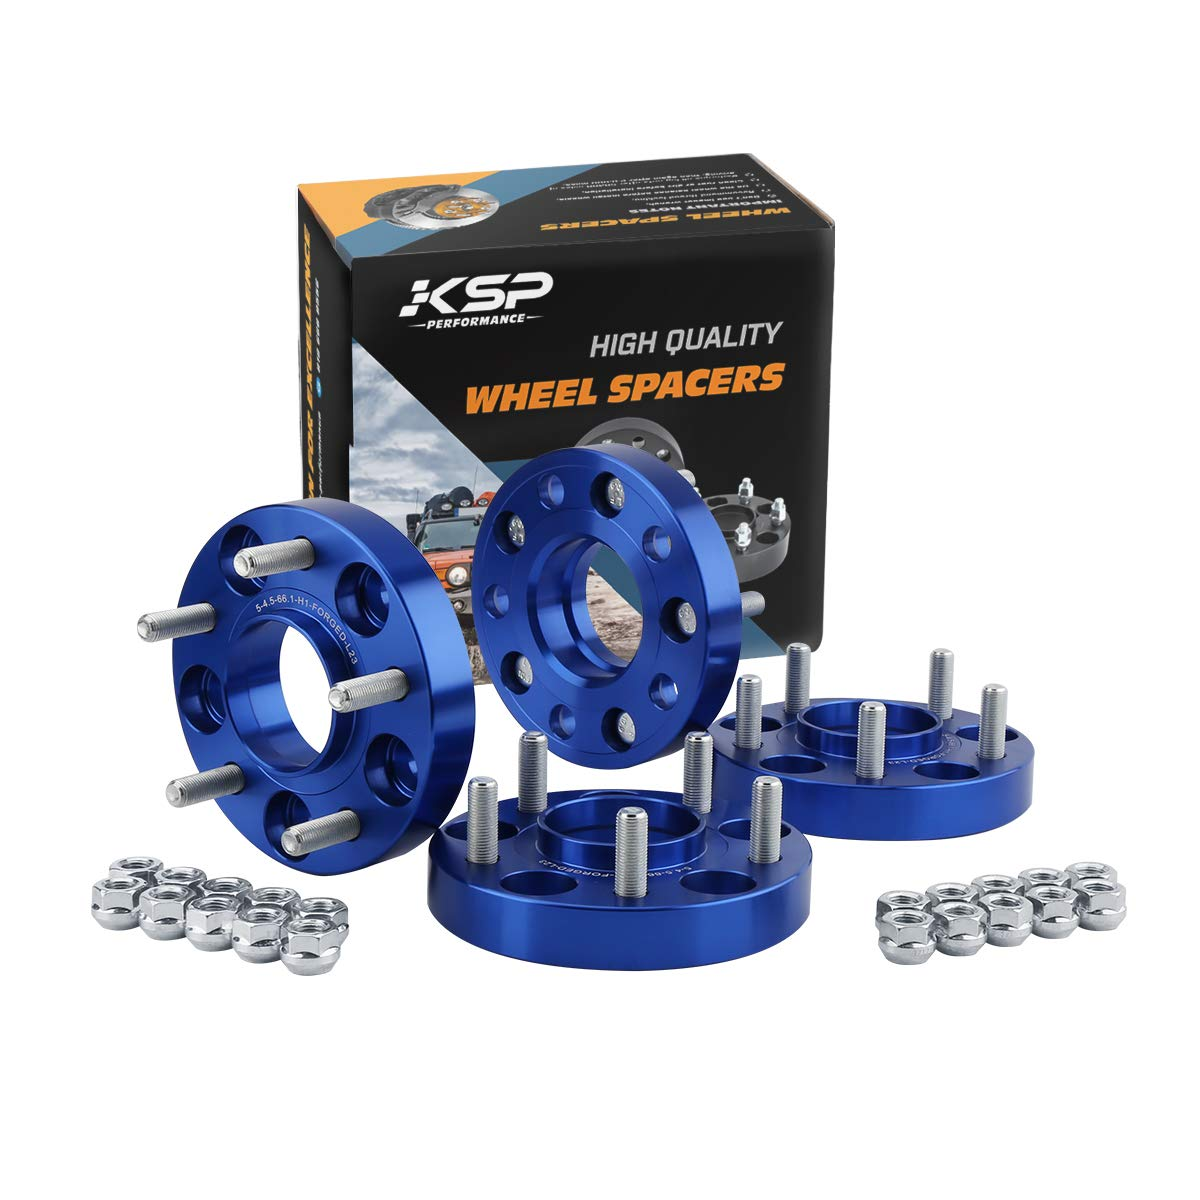 "KSP 5x114.3 Wheels Spacers Fit for G35 G37 350Z 370Z 240Sx 300Zx Altima,1""(25mm) 5x4.5 Hub Centric 66.1mm Thread Pitch 12x1.25 Studs for 5 Lug Wheels"